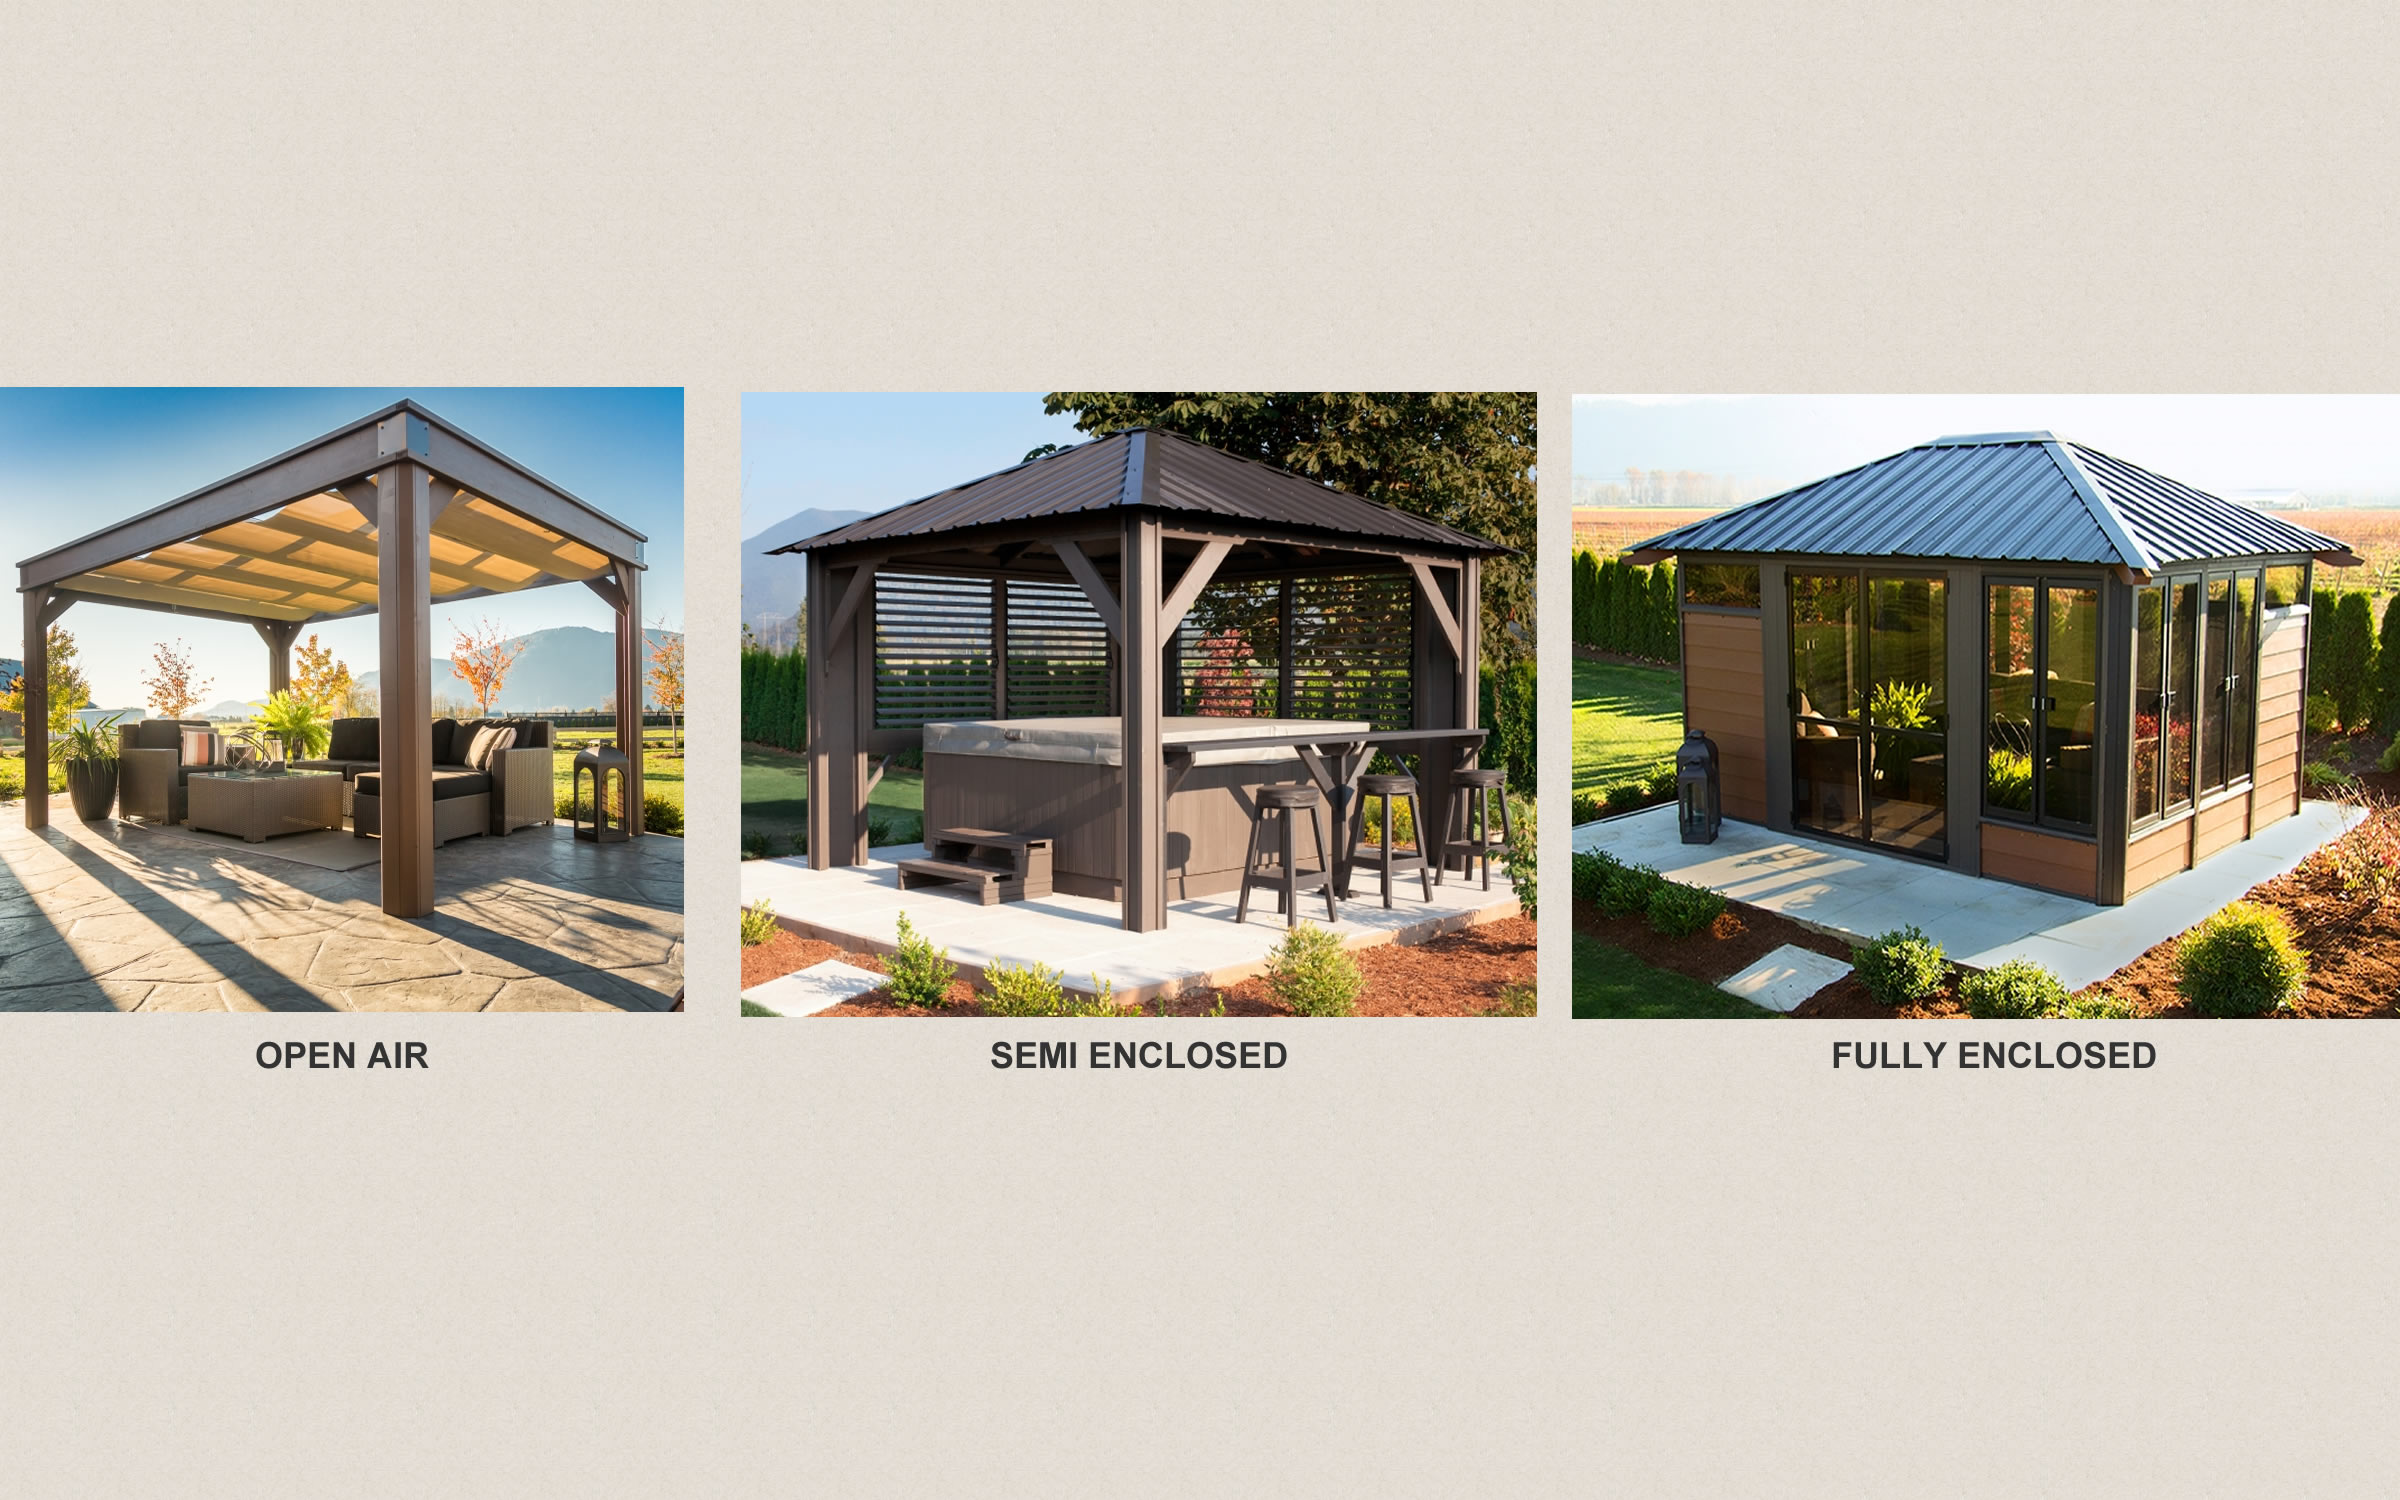 Hot tubs, BBQ Grills, Outdoor Furniture - Leisure City Woodruff